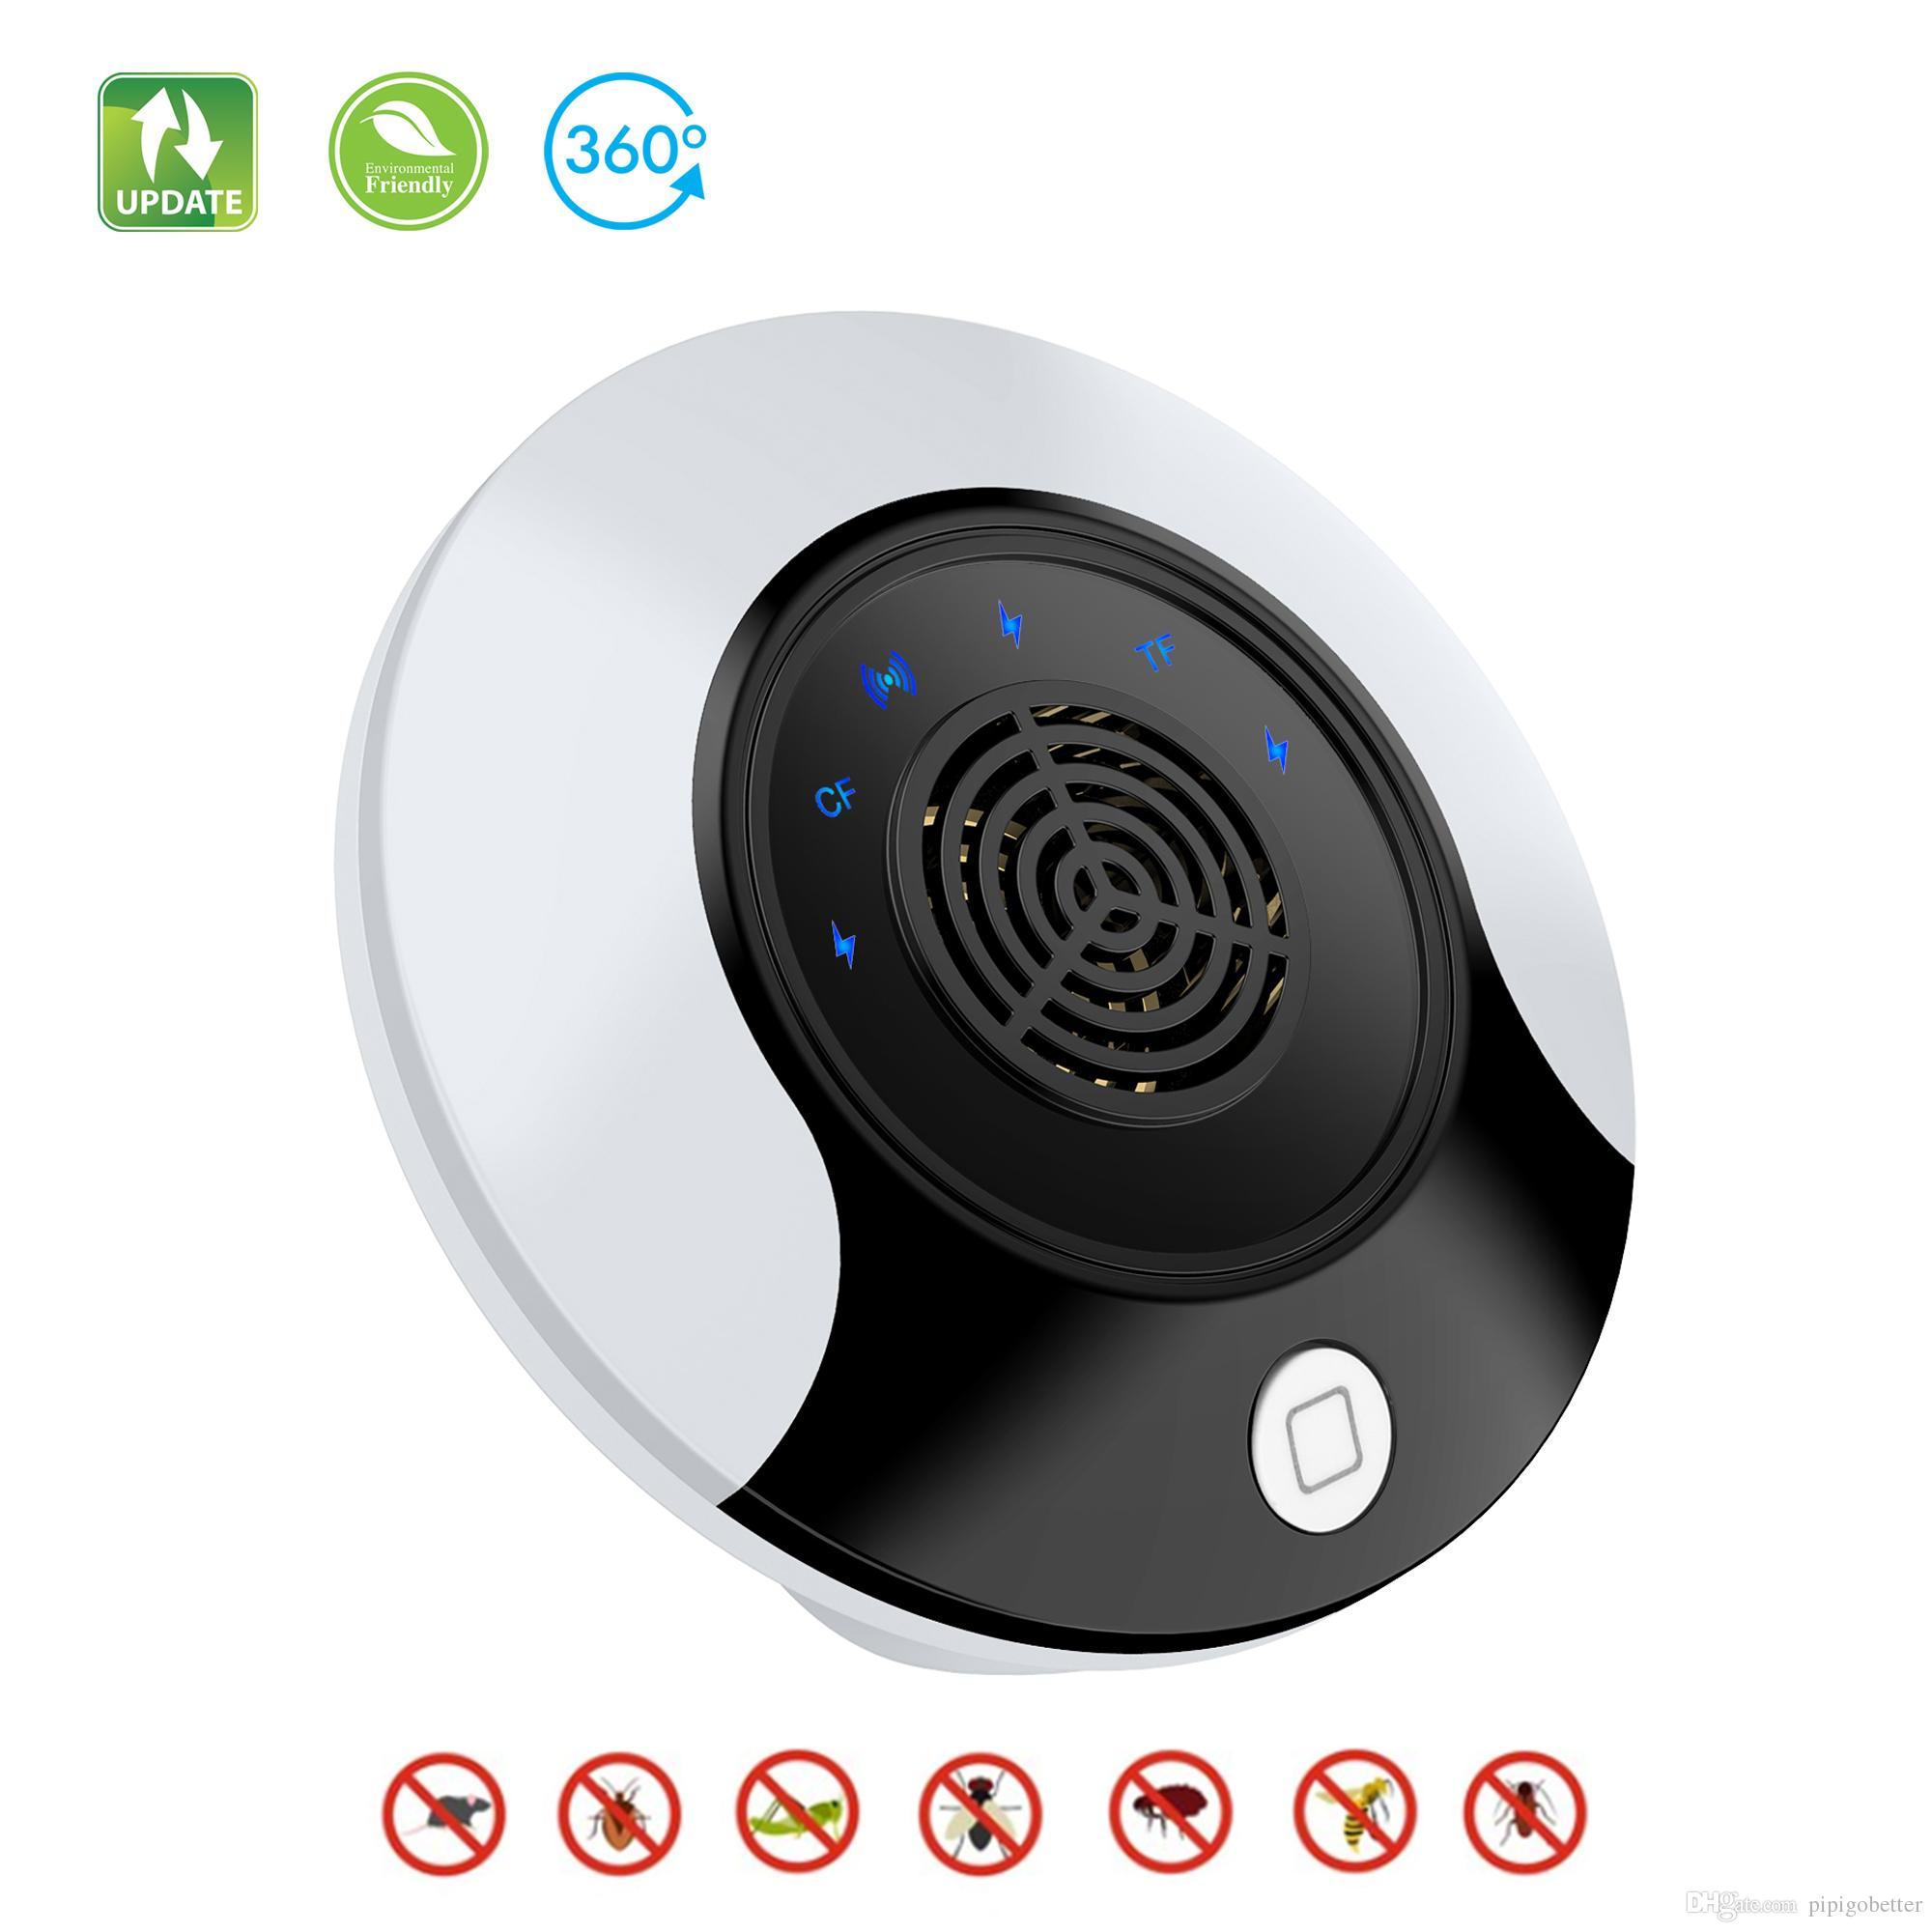 Ultrasonic Pest Repeller Upgrade Insect Electronic Pest Control Bug  Repellent for Mosquito Repellent Rodent Fly Cockroach Mouse DHL FREE